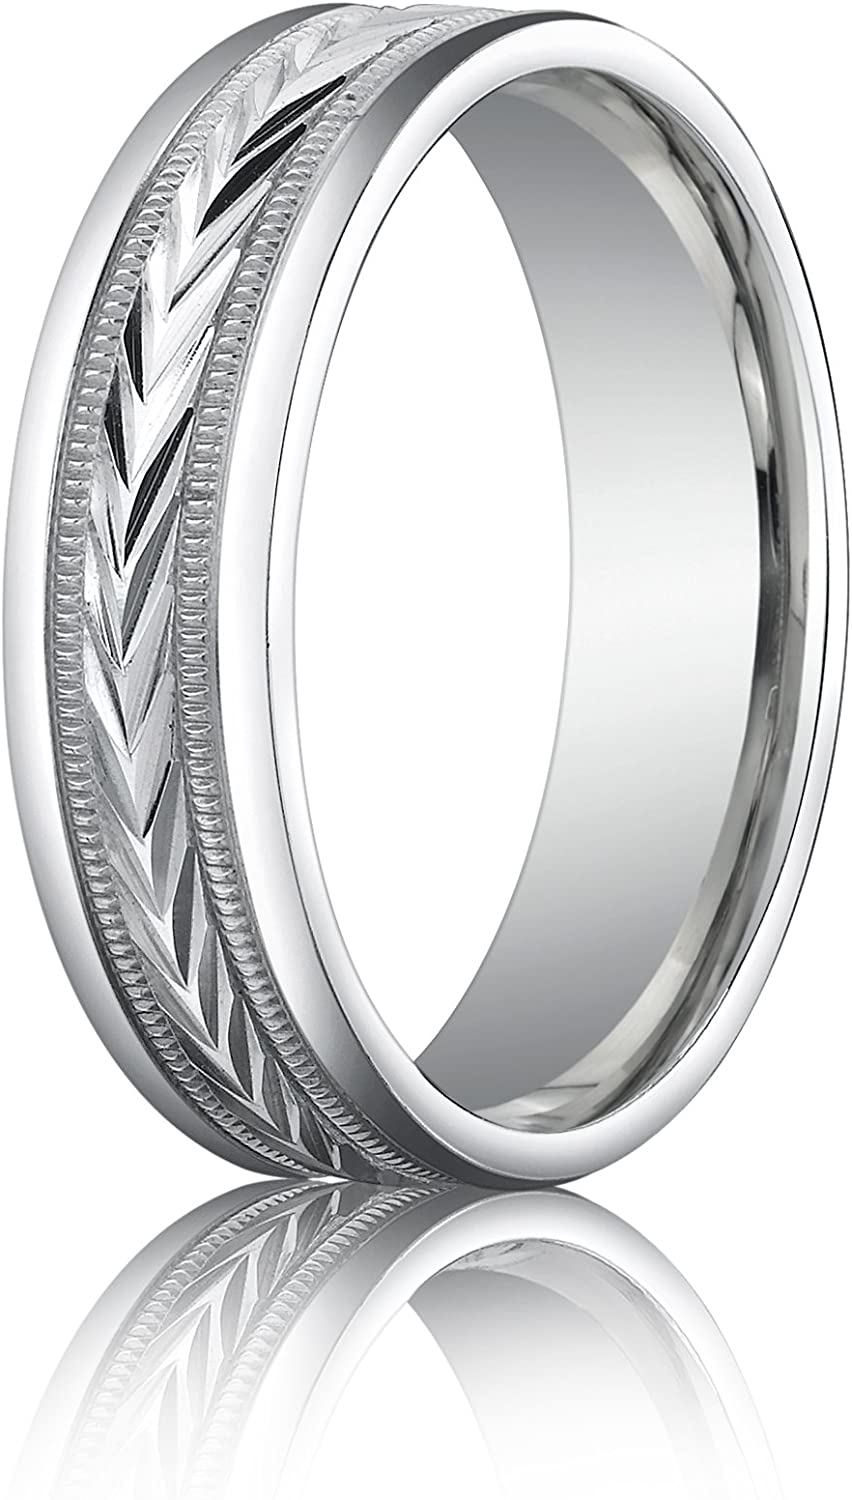 Men's 10K White Gold 6mm Comfort Fit Wheat Round Edge Carved Wedding Band Ring